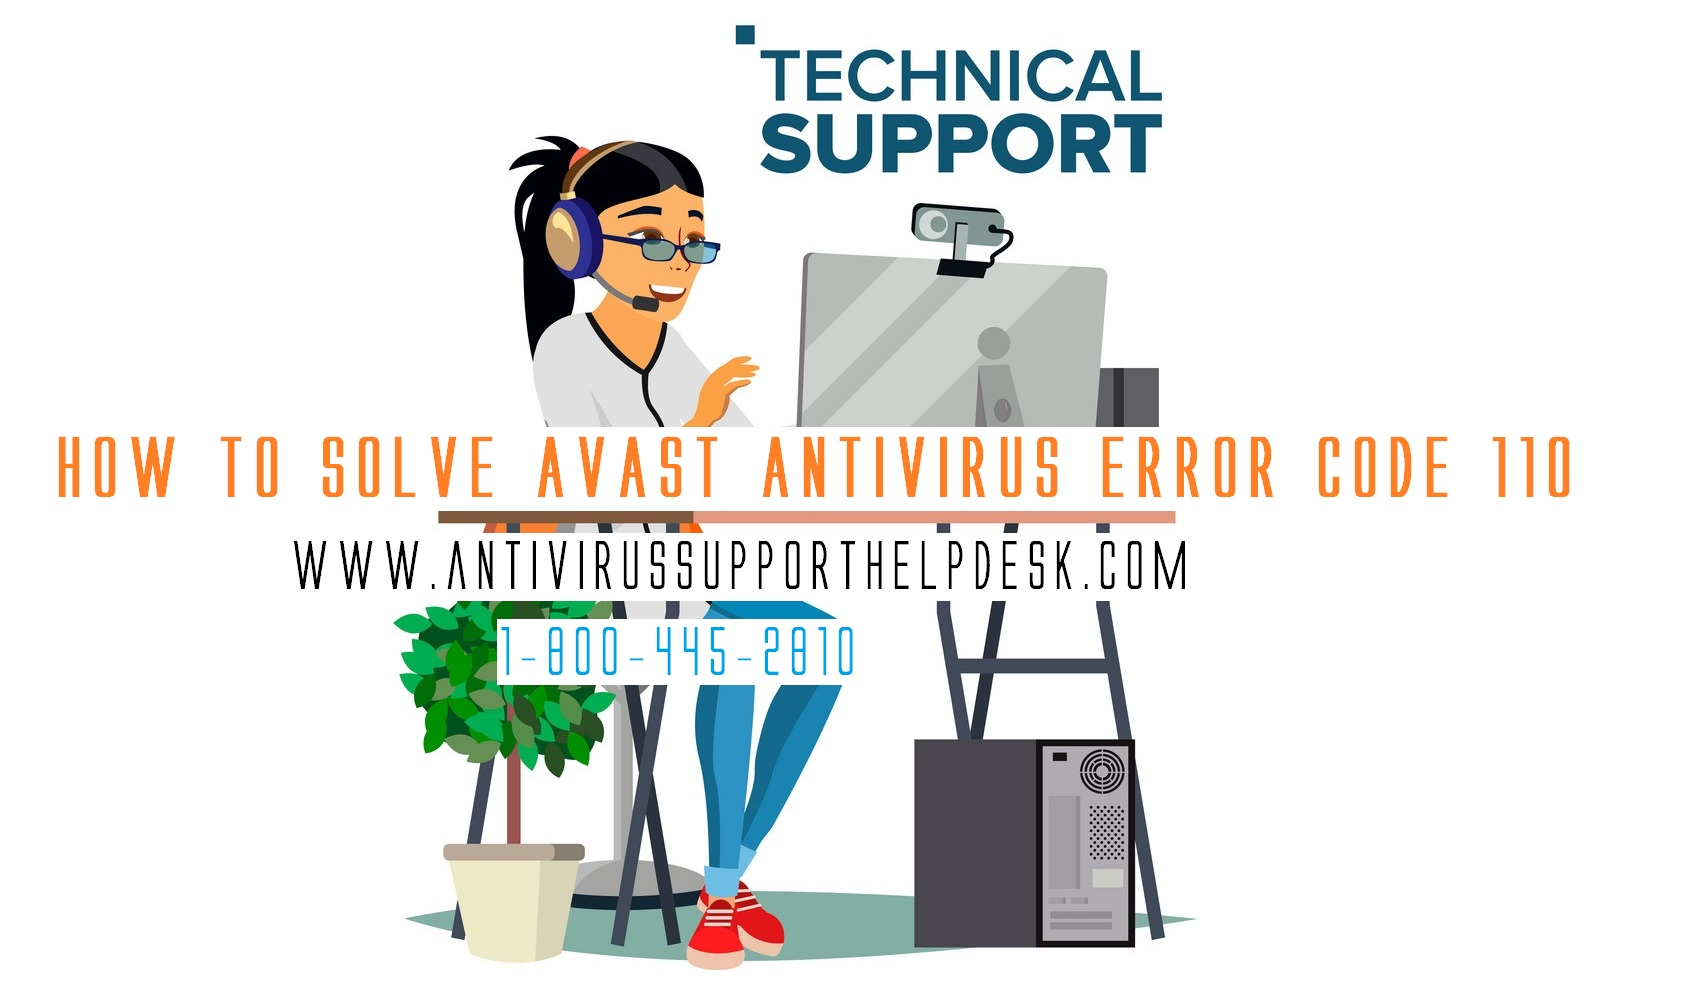 How to Solve AVAST Antivirus Error Code 110